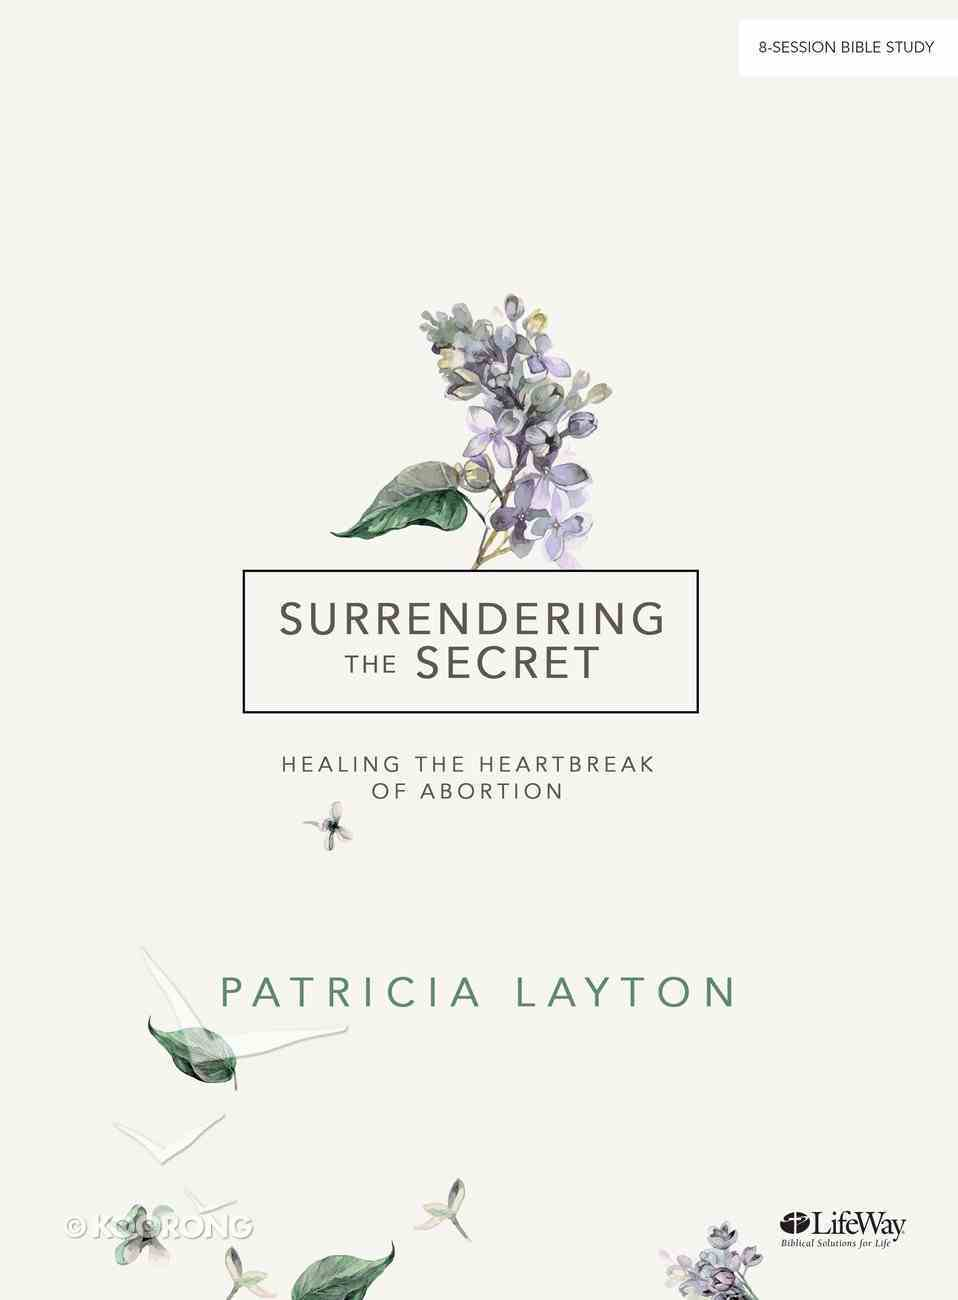 Surrendering the Secret: Healing the Heartbreak of Abortion (Bible Study Book, 8 Sessions) Paperback